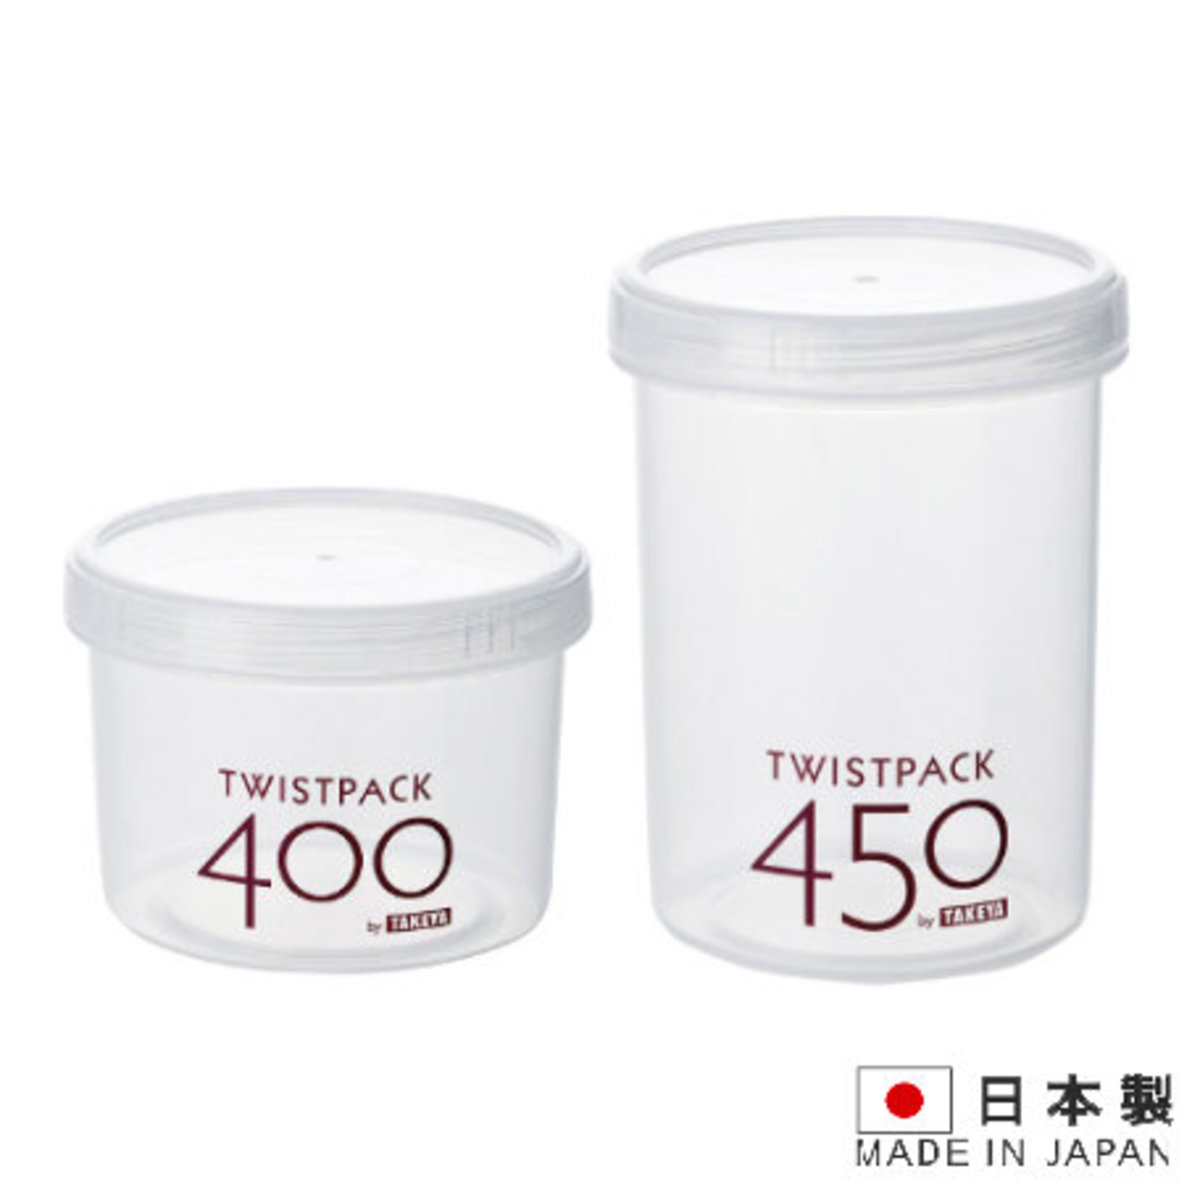 400 Twist Pack Transparent Sealant Box Container 1 Piece_choose 1 size  [Made in Japan]